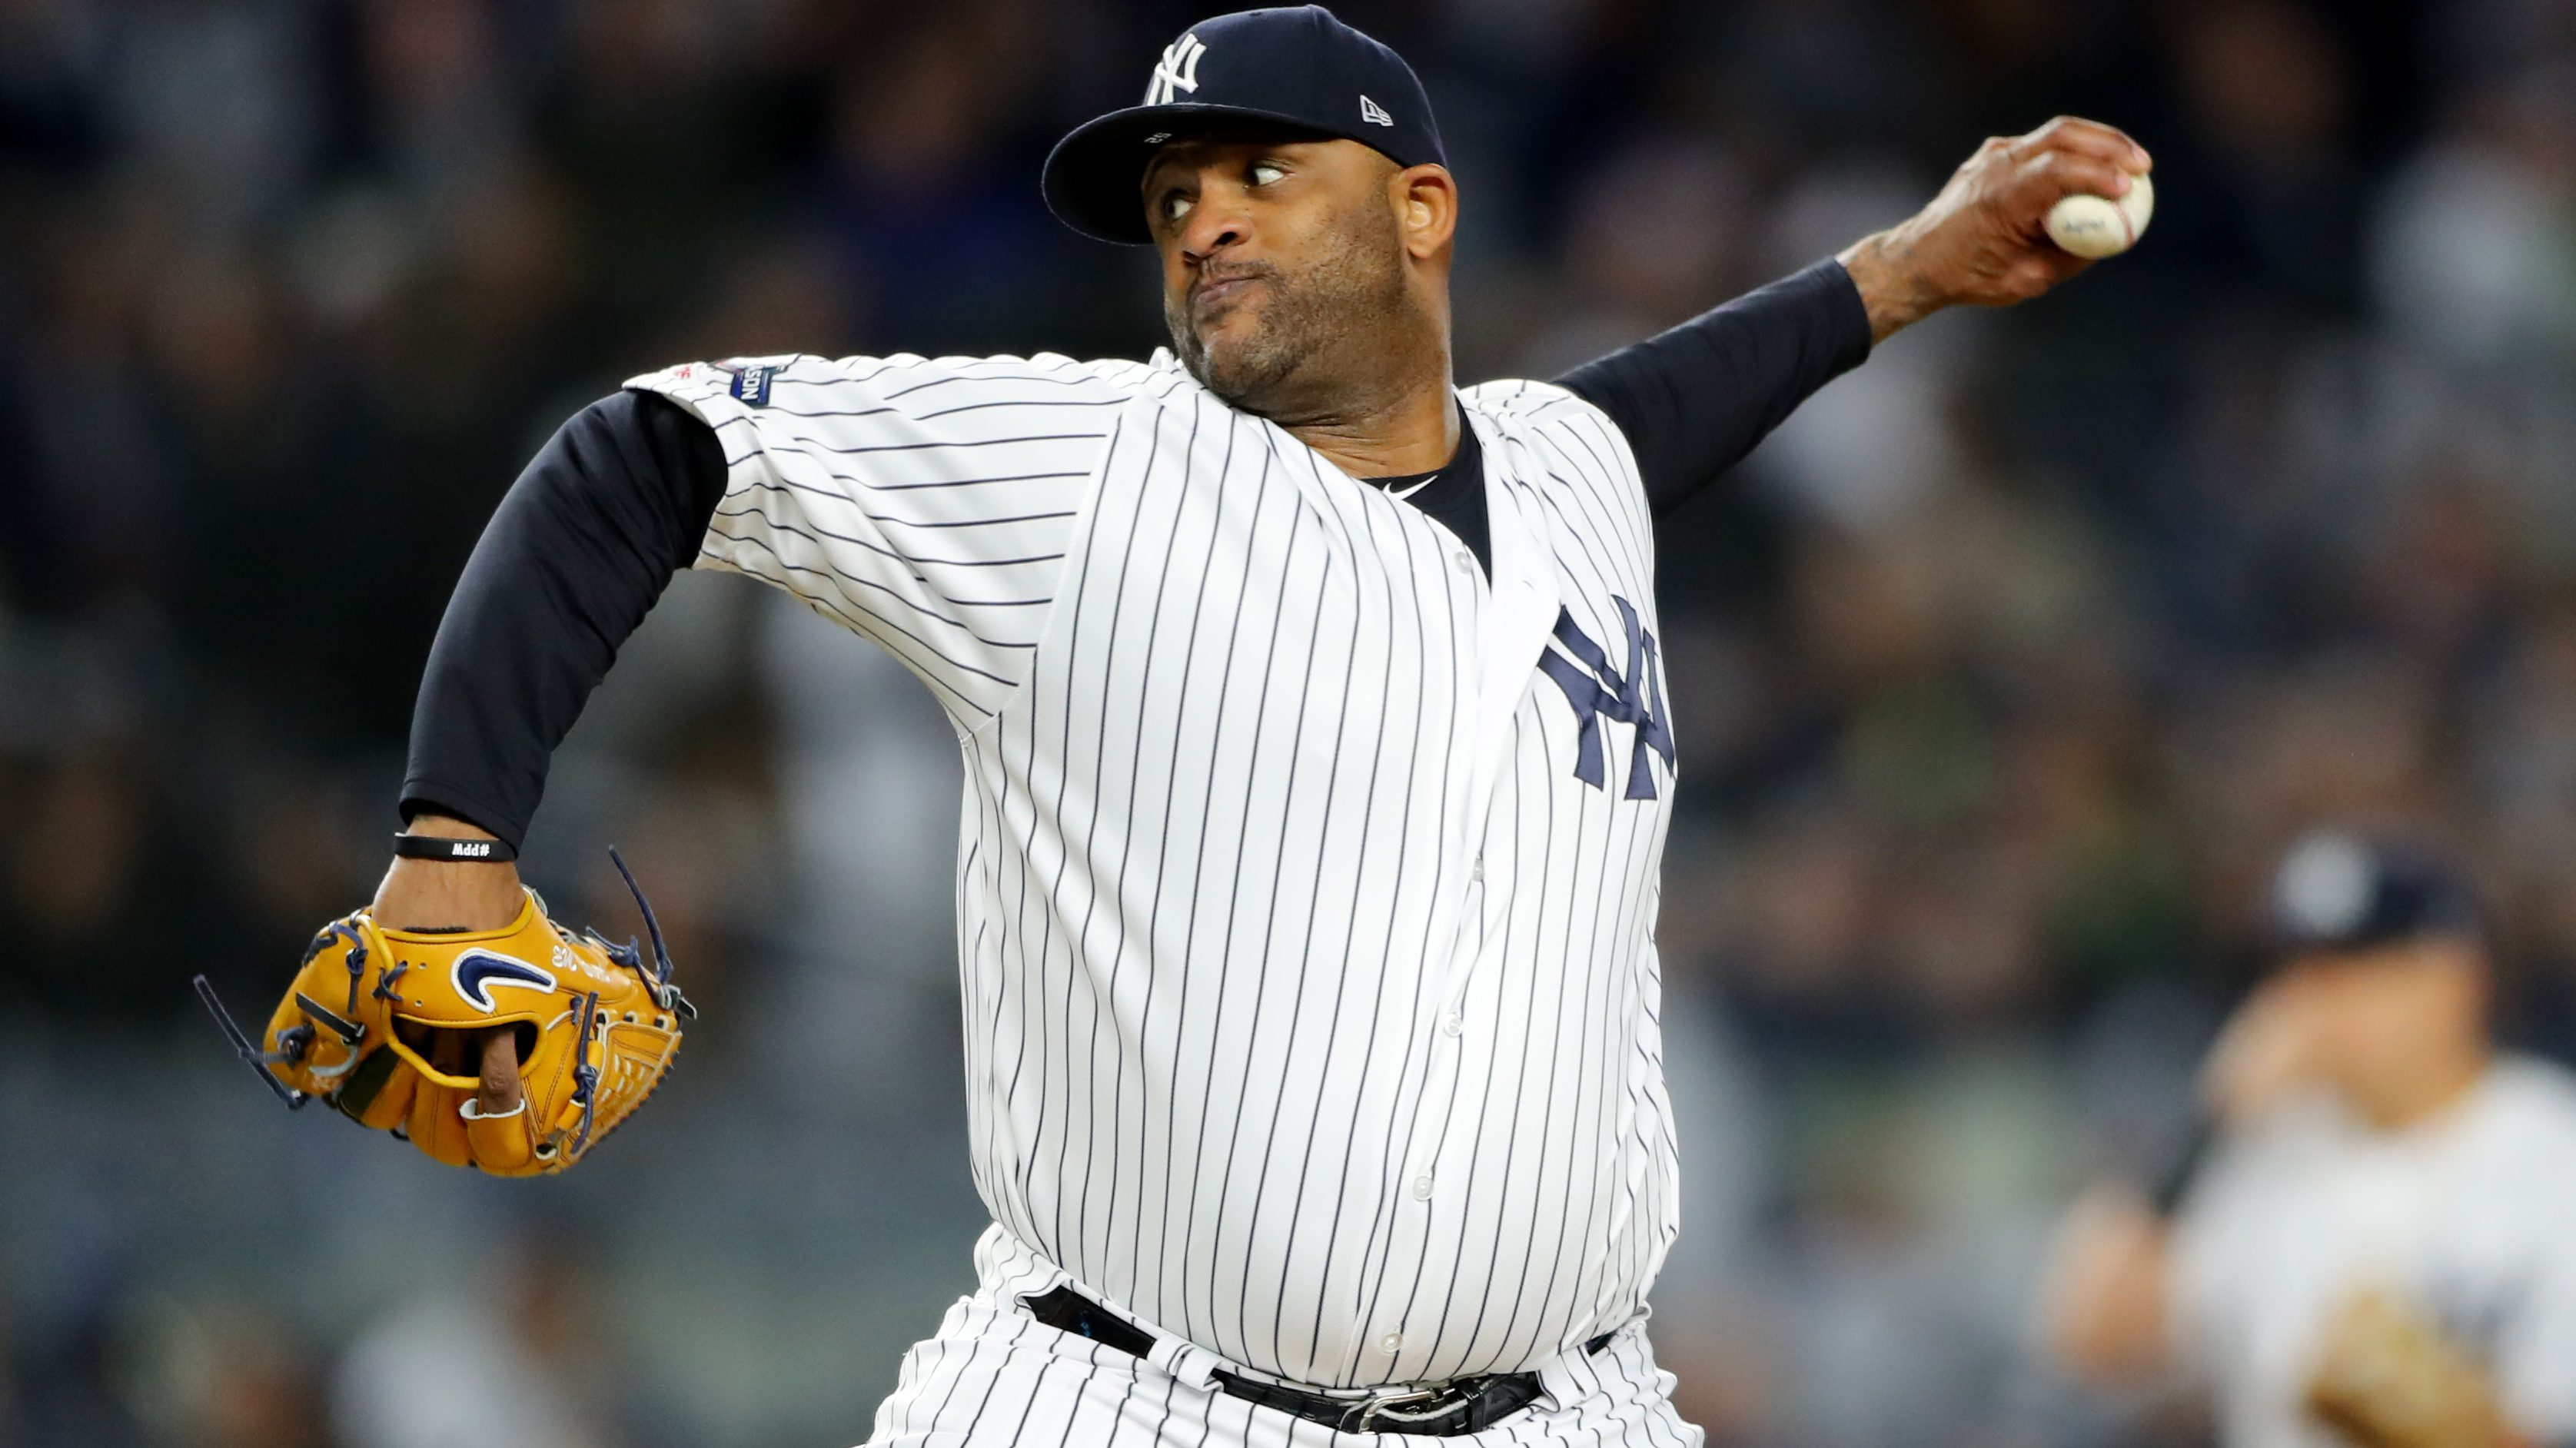 CC Sabathia takes role as special adviser with Yankees